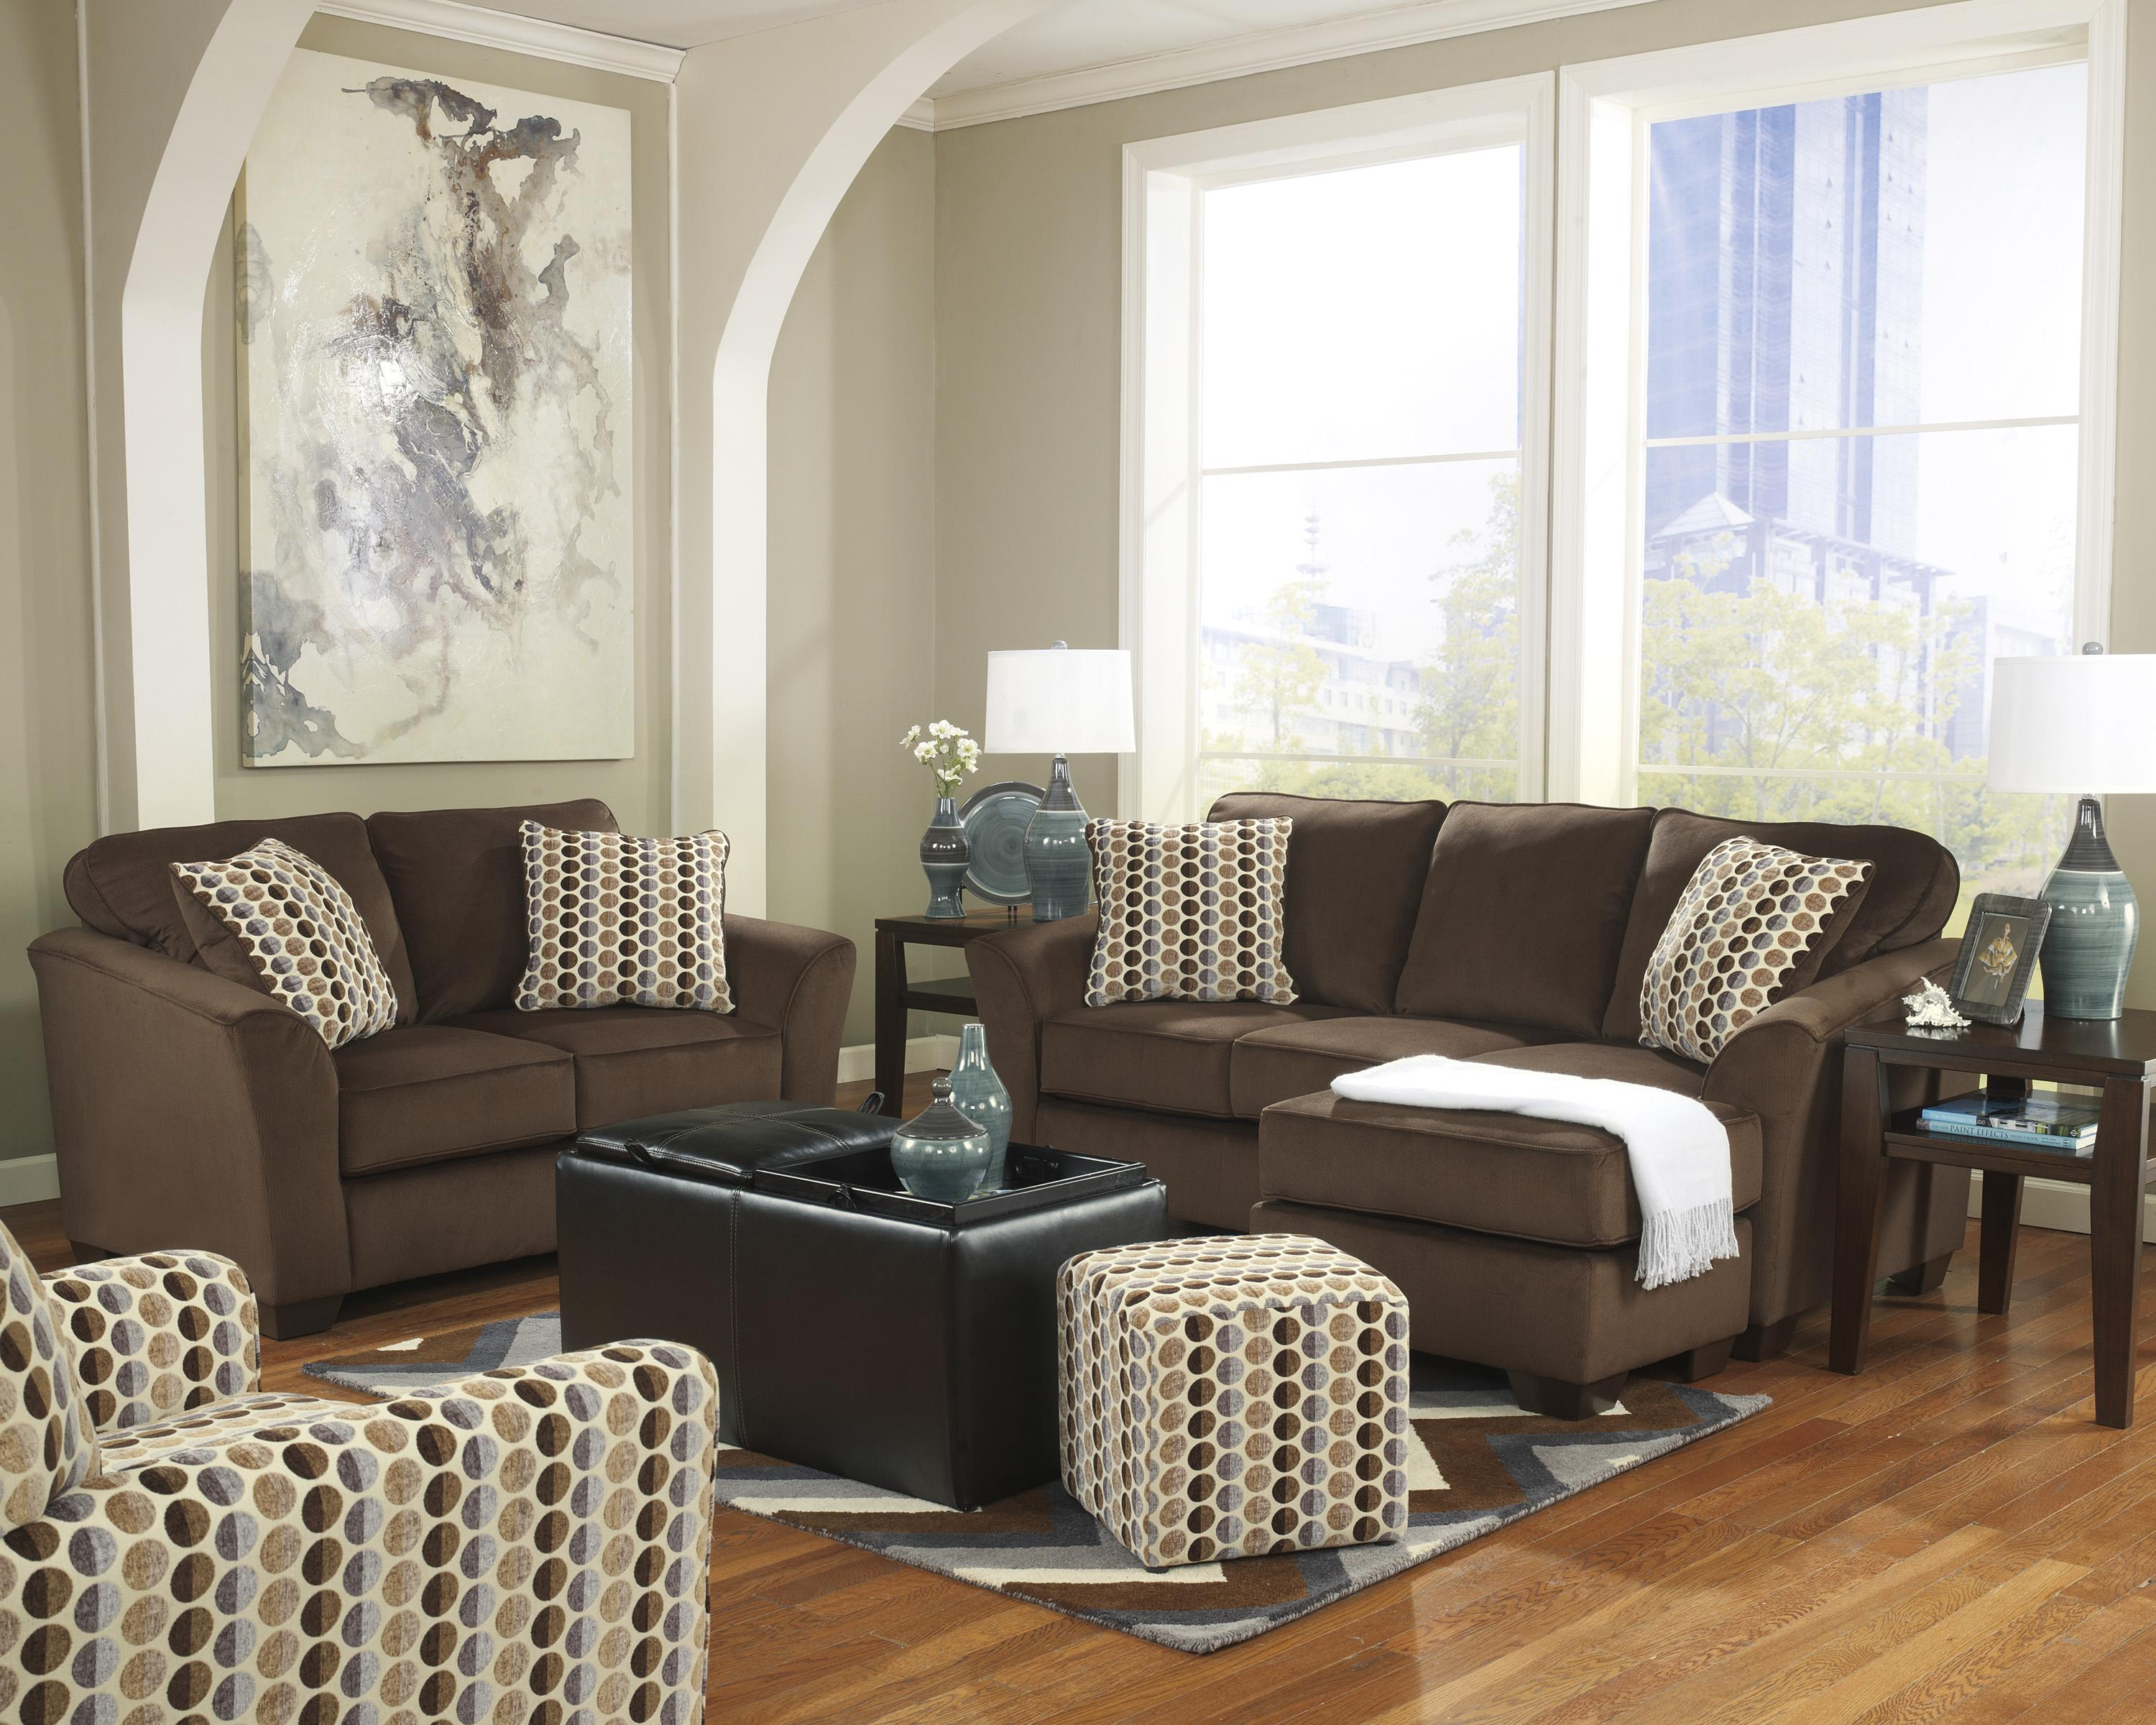 Ashley Furniture Geor Cafe Stationary Living Room